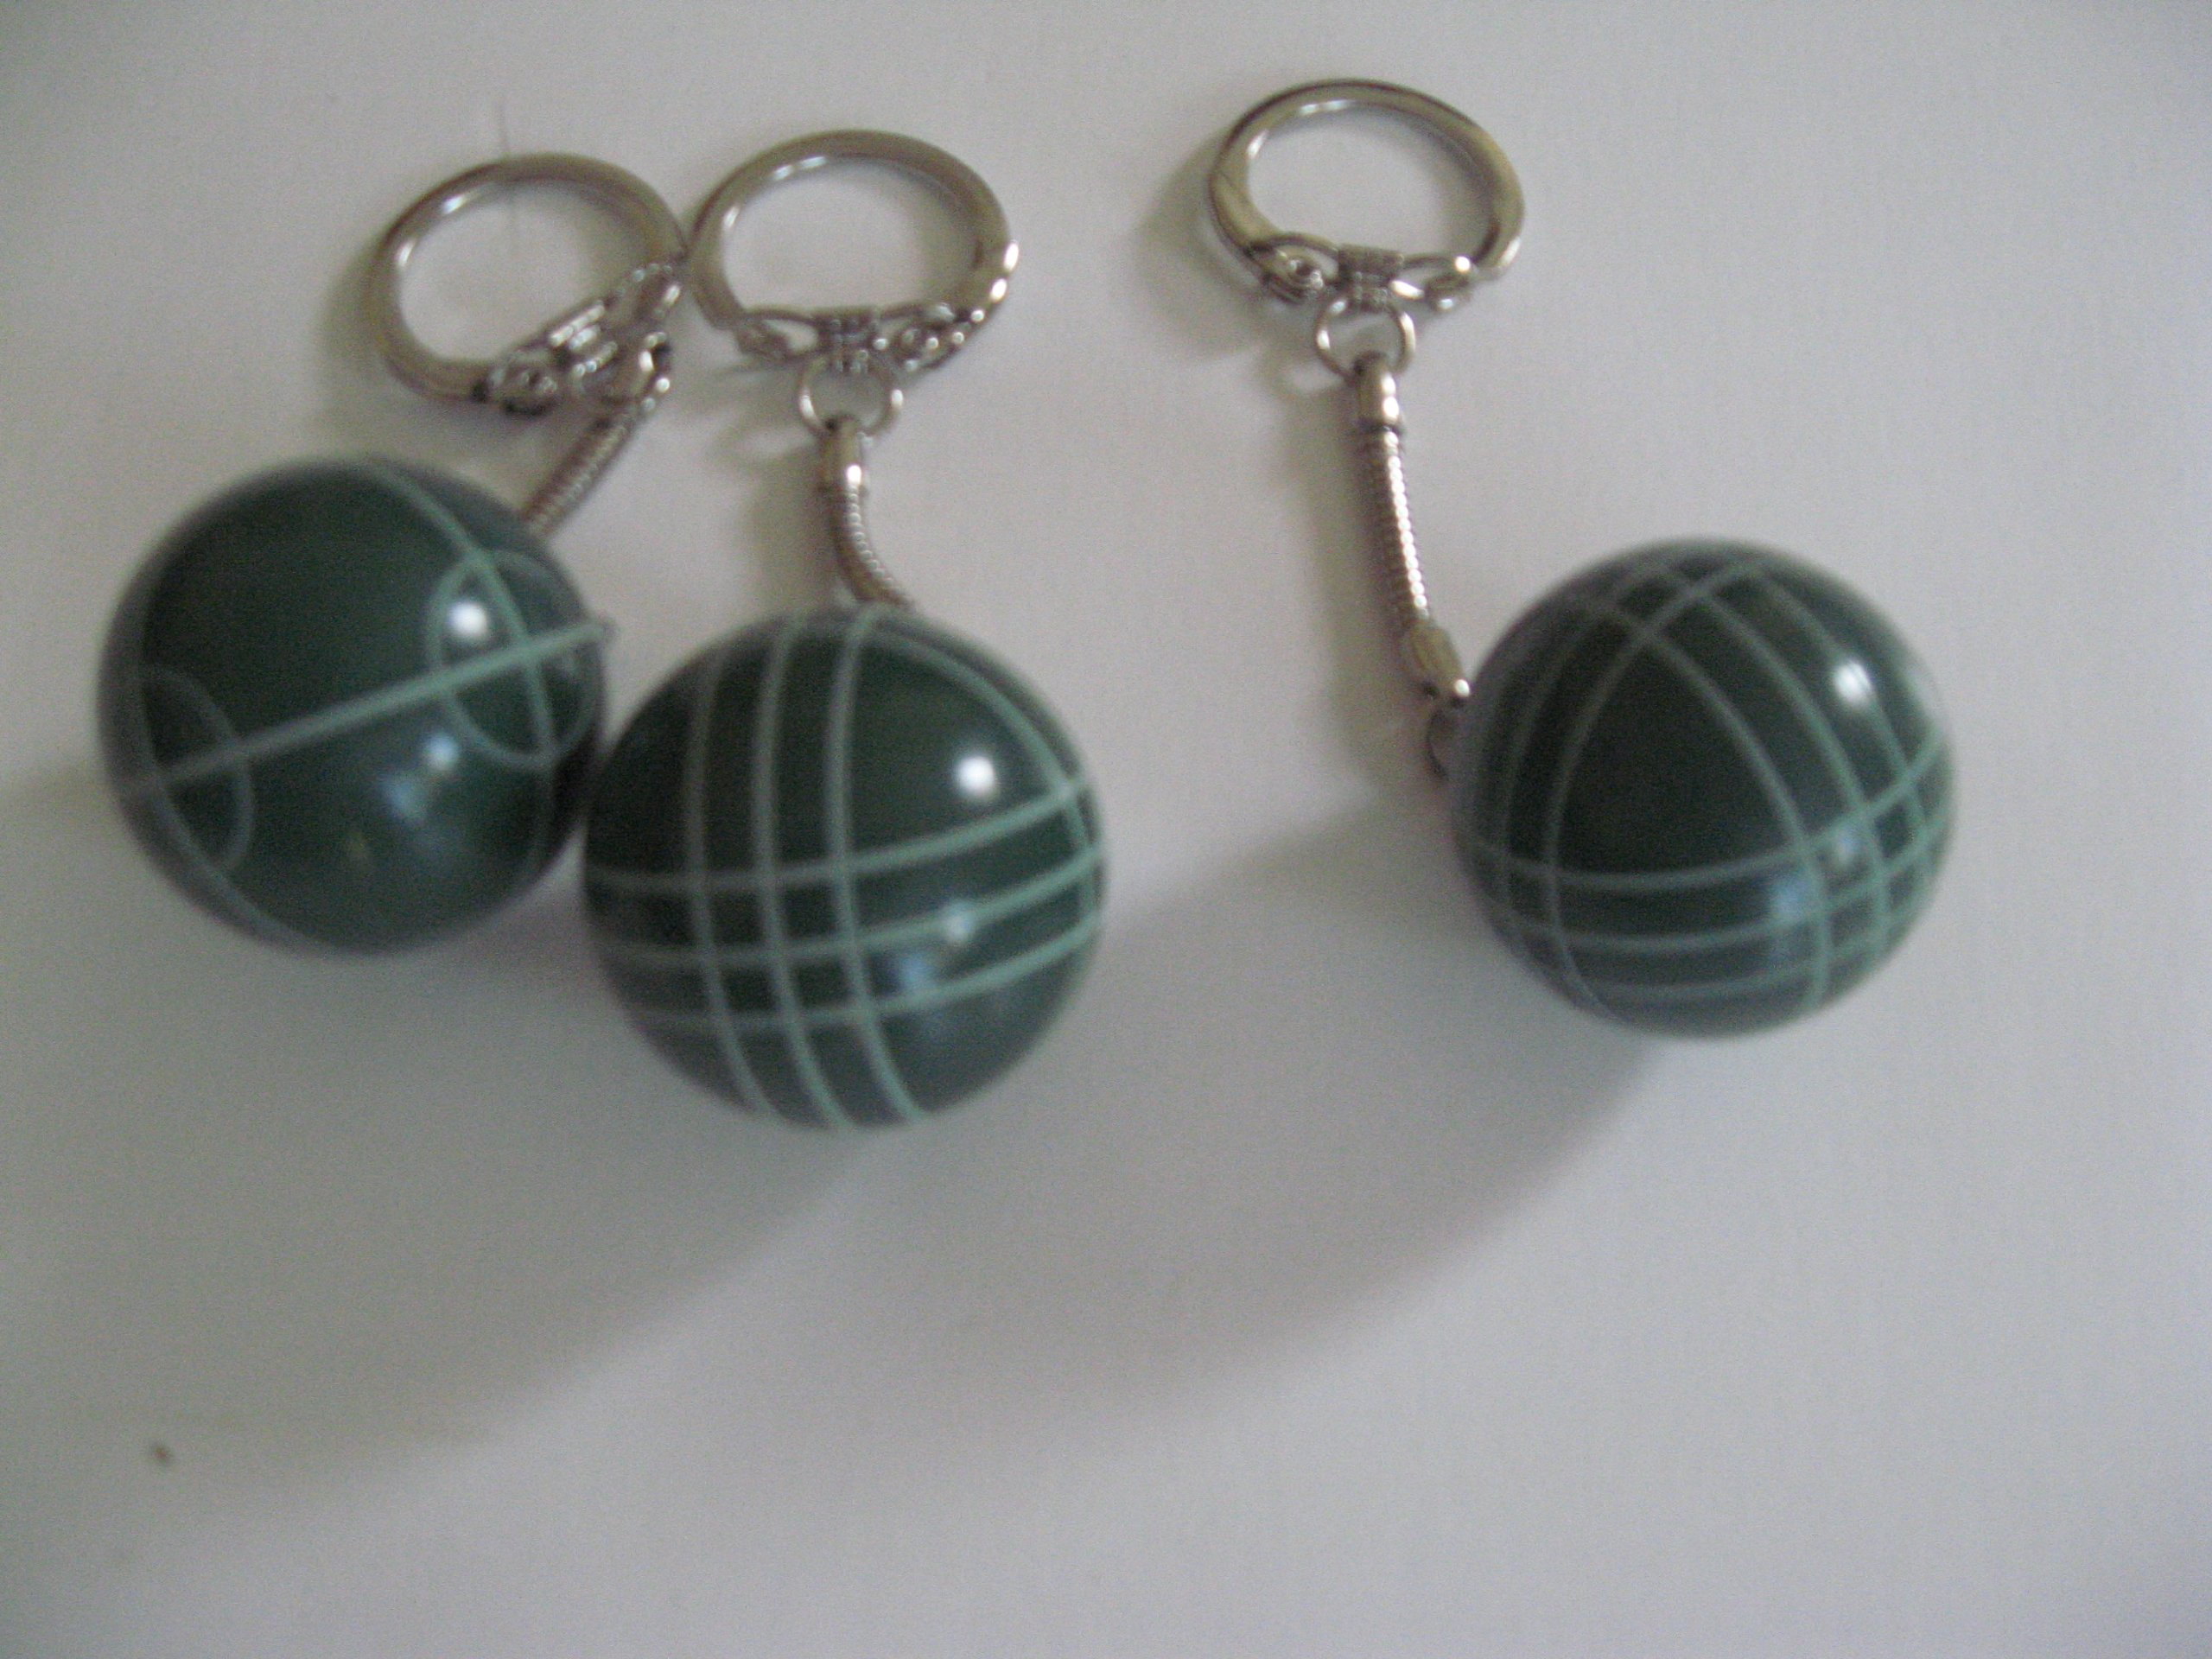 Regent-Halex Bocce Ball Keychain - pack of 3 by Regent-Halex